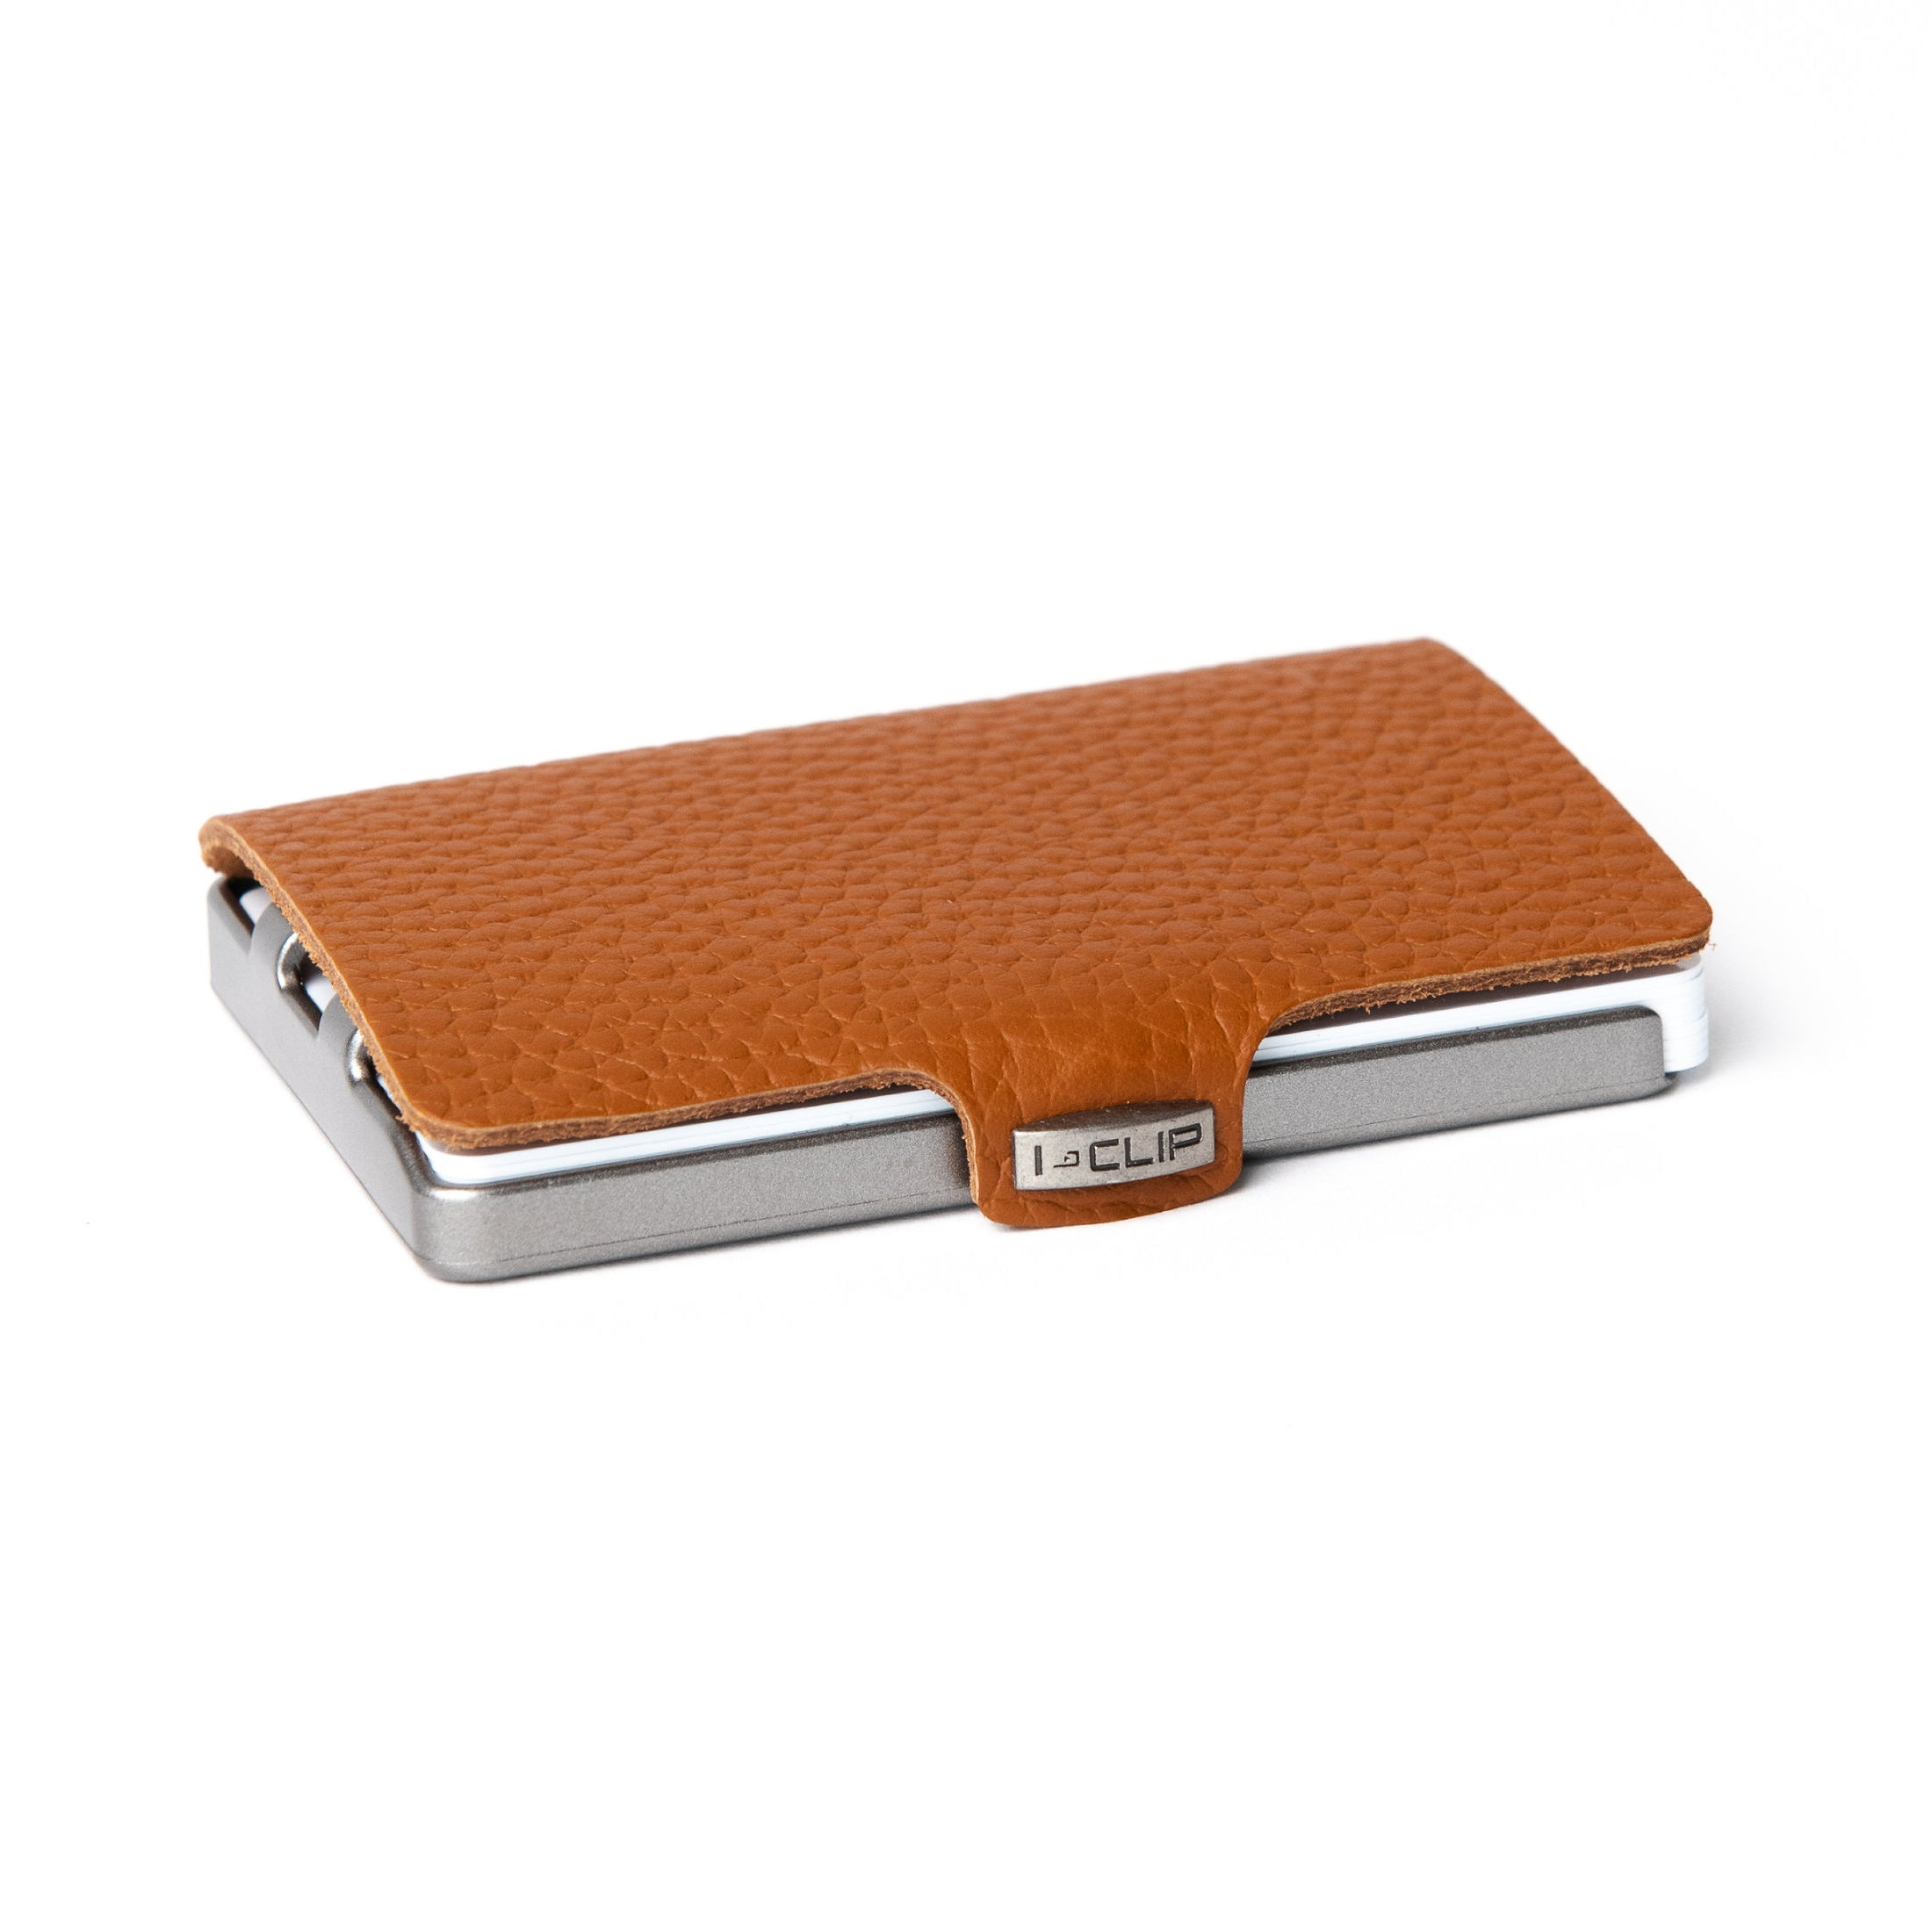 I-CLIP - Full Grain Leather - Nutshell / Metallic Gray Frame - I-CLIP